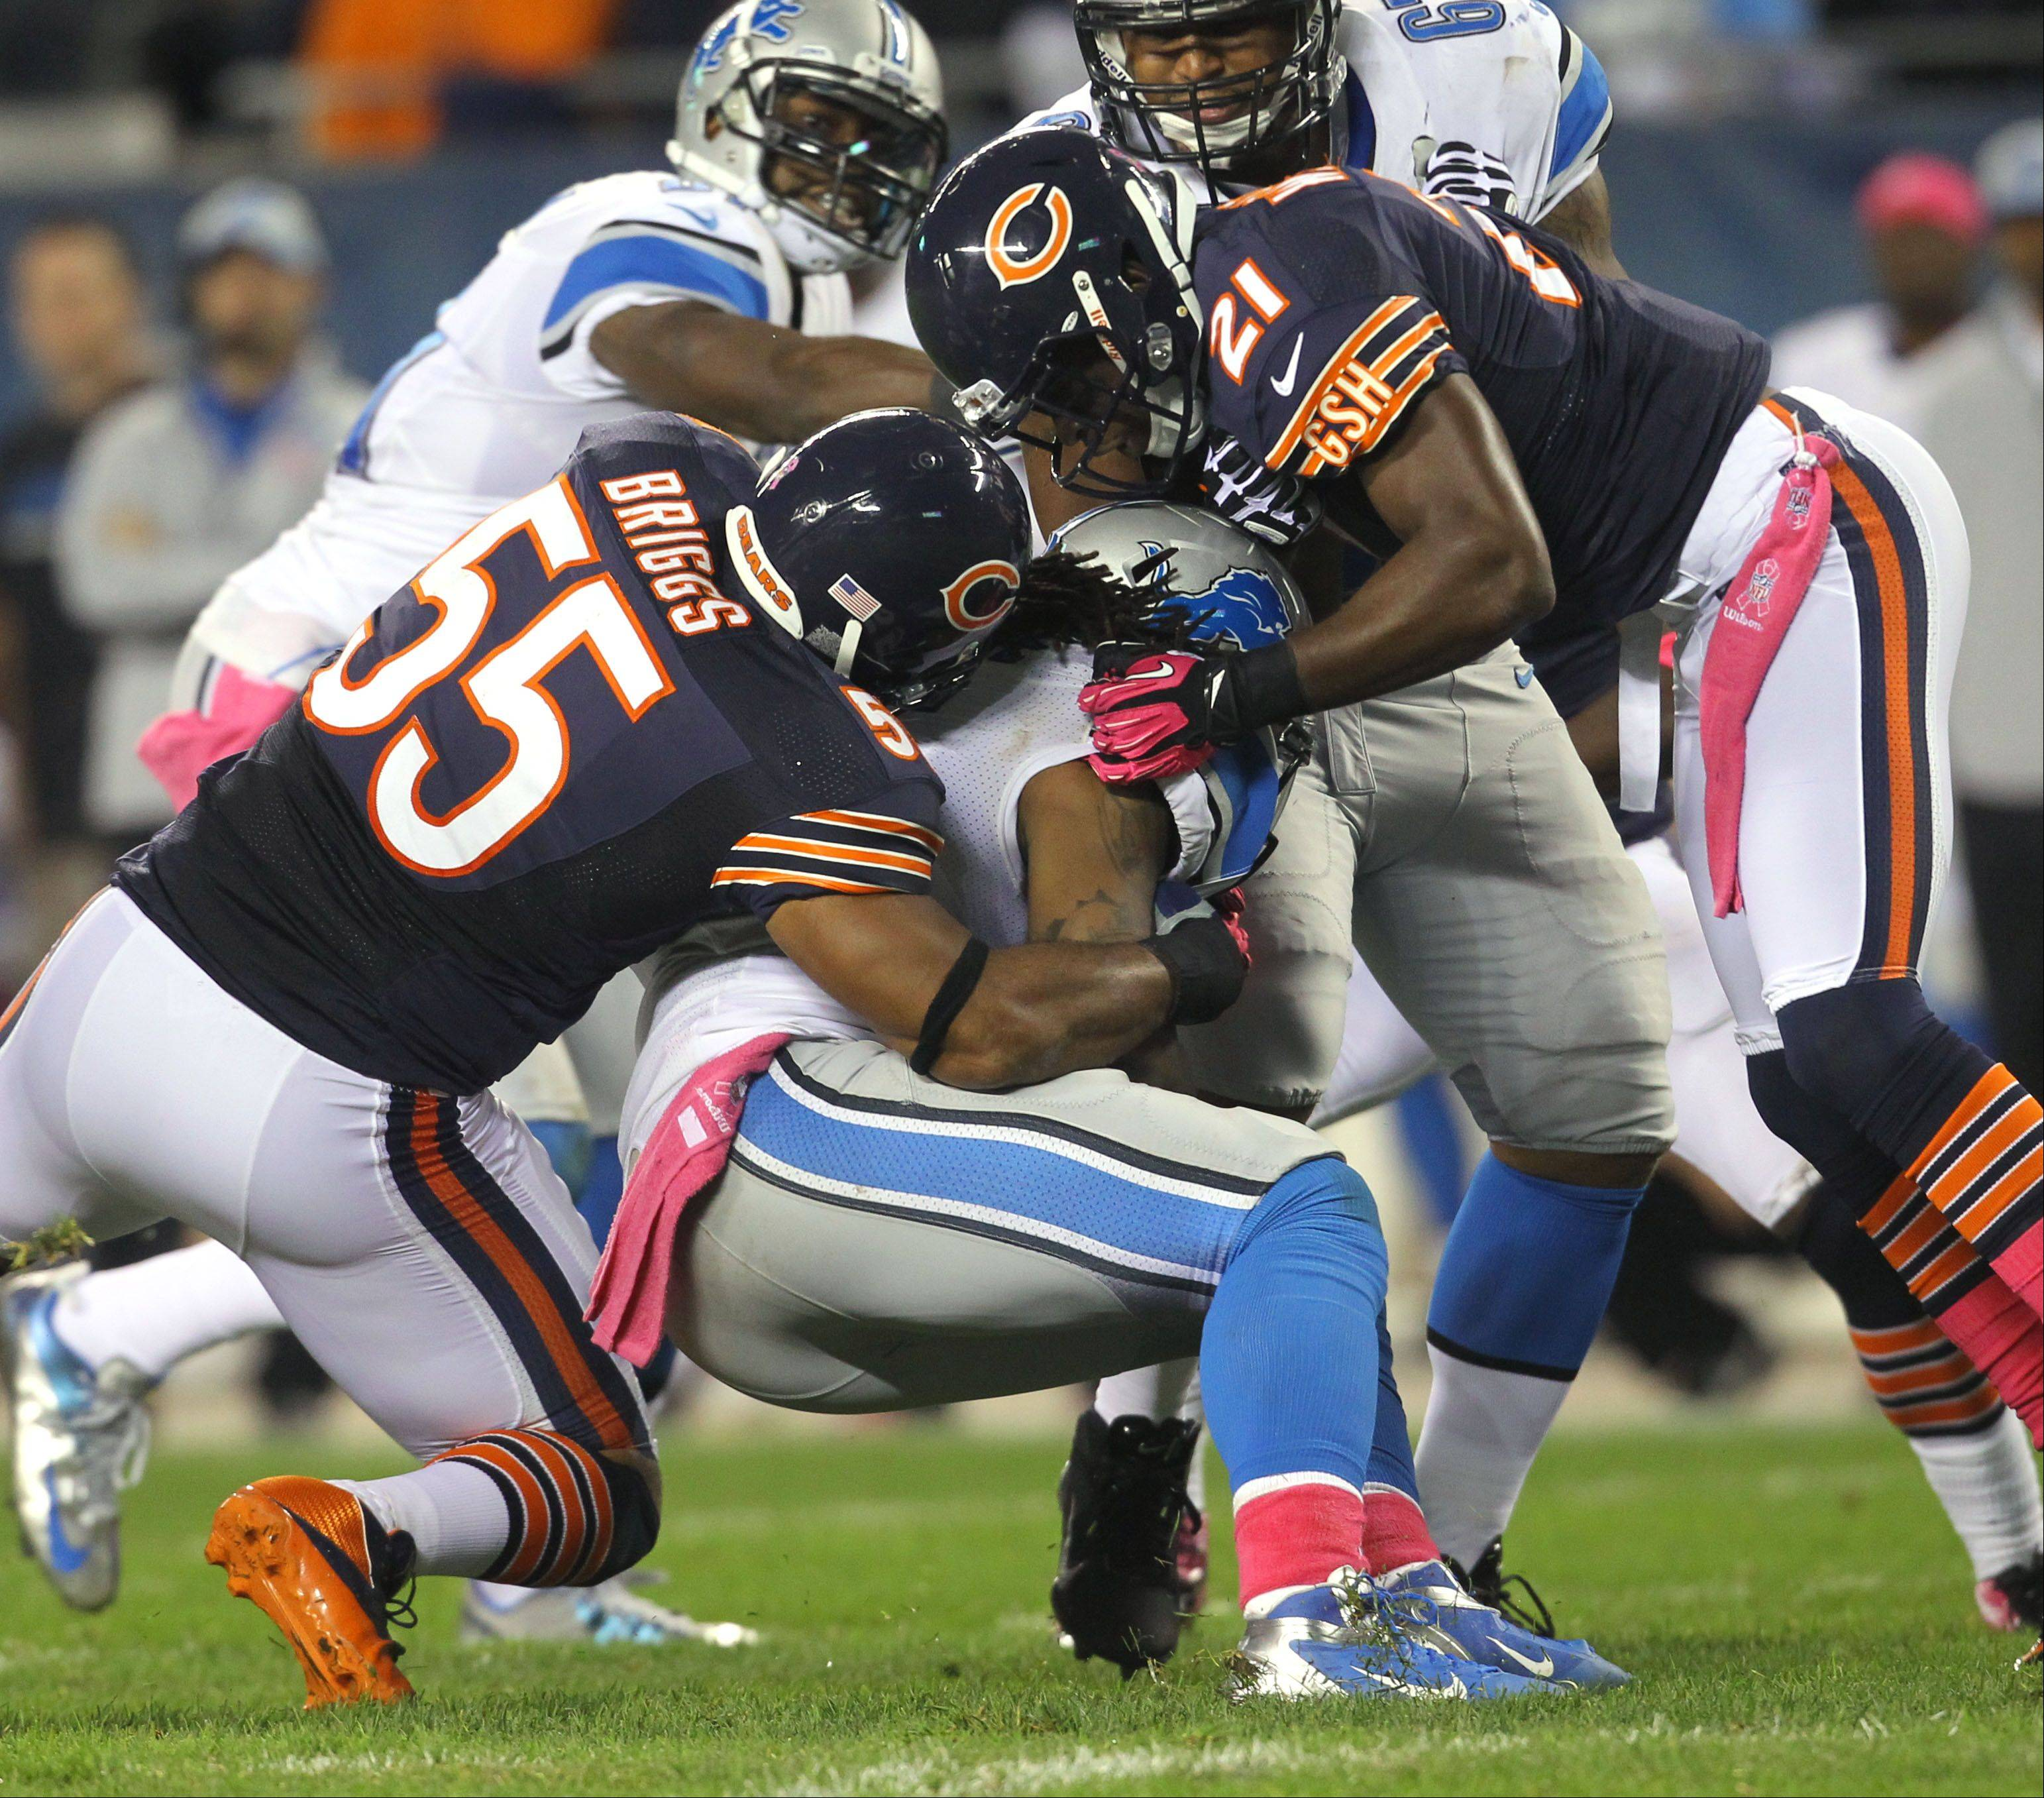 Chicago Bears outside linebacker Lance Briggs and Chicago Bears strong safety Major Wright wrap up Detroit Lions running back Joique Bell.